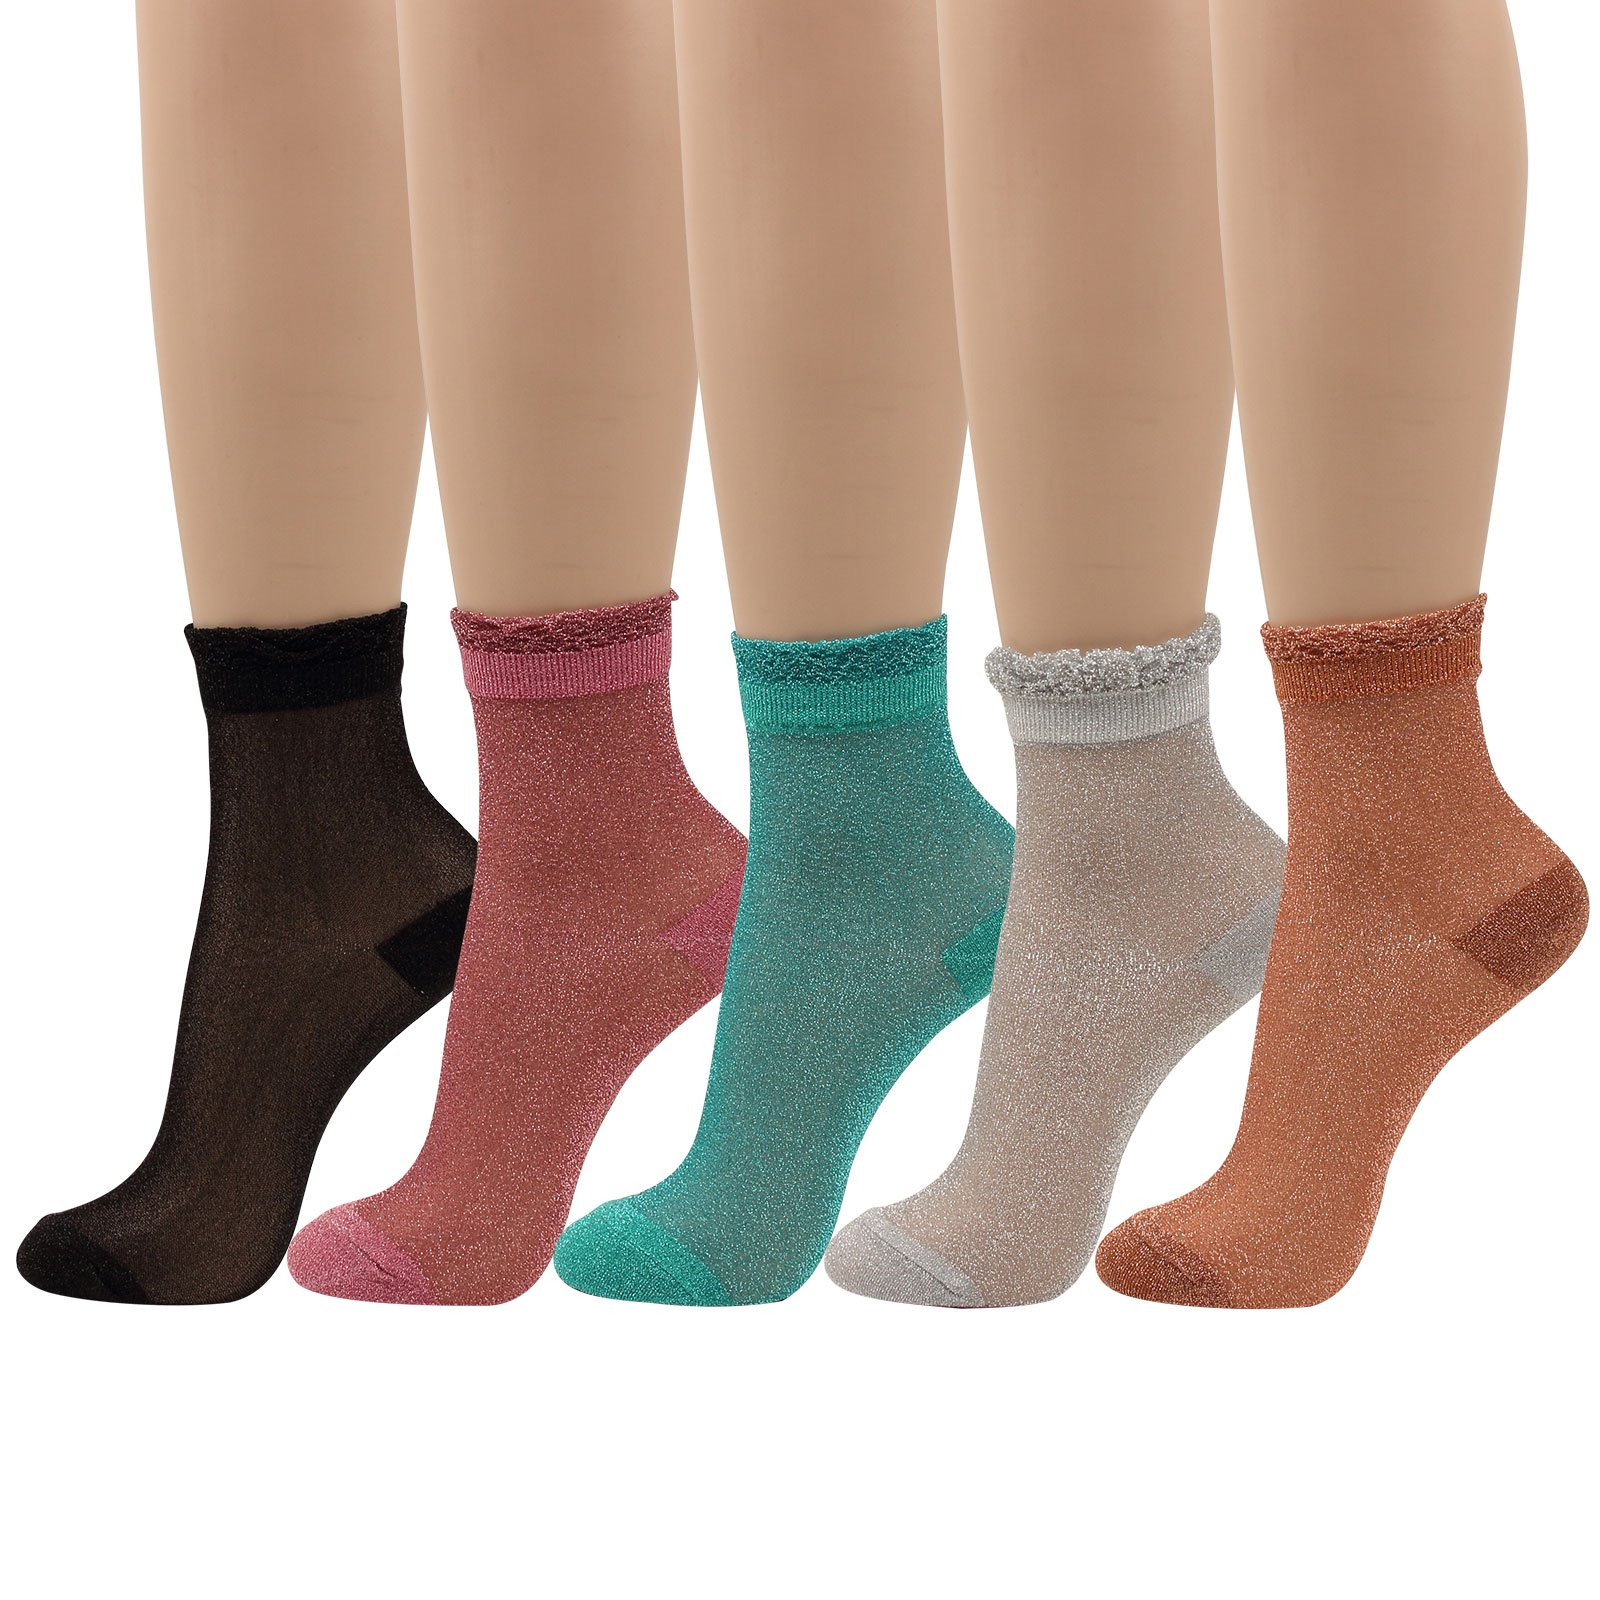 WOWFOOT Women's Lurex Shiny Socks Colorful Gritter Crew Socks for Girl (5 pair - top lace)